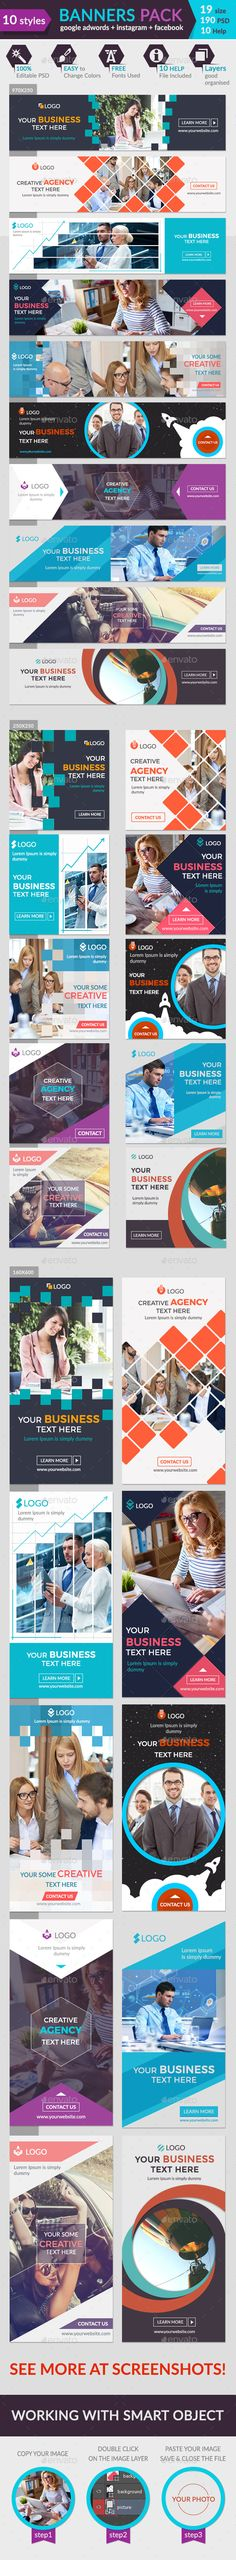 Banners Pack Design Template - Banners & Ads Web Elements Template PSD…